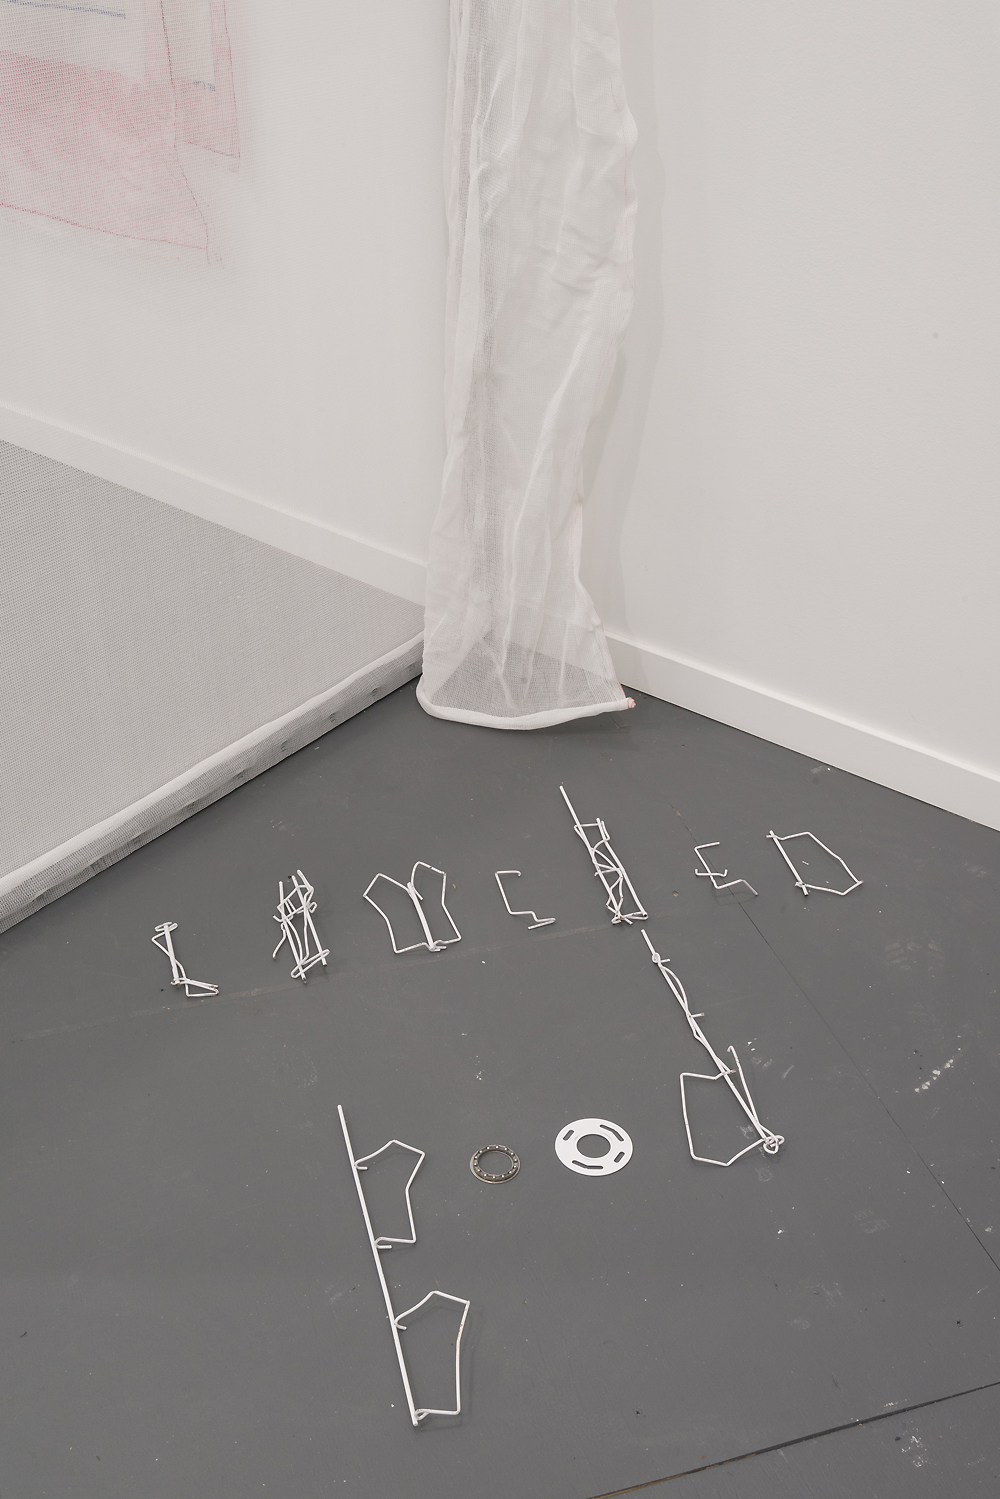 Catherine Sullivan / Valerie Snobeck,  Limited Good 3 (detail) , 2013, mixed media,variable dimensions